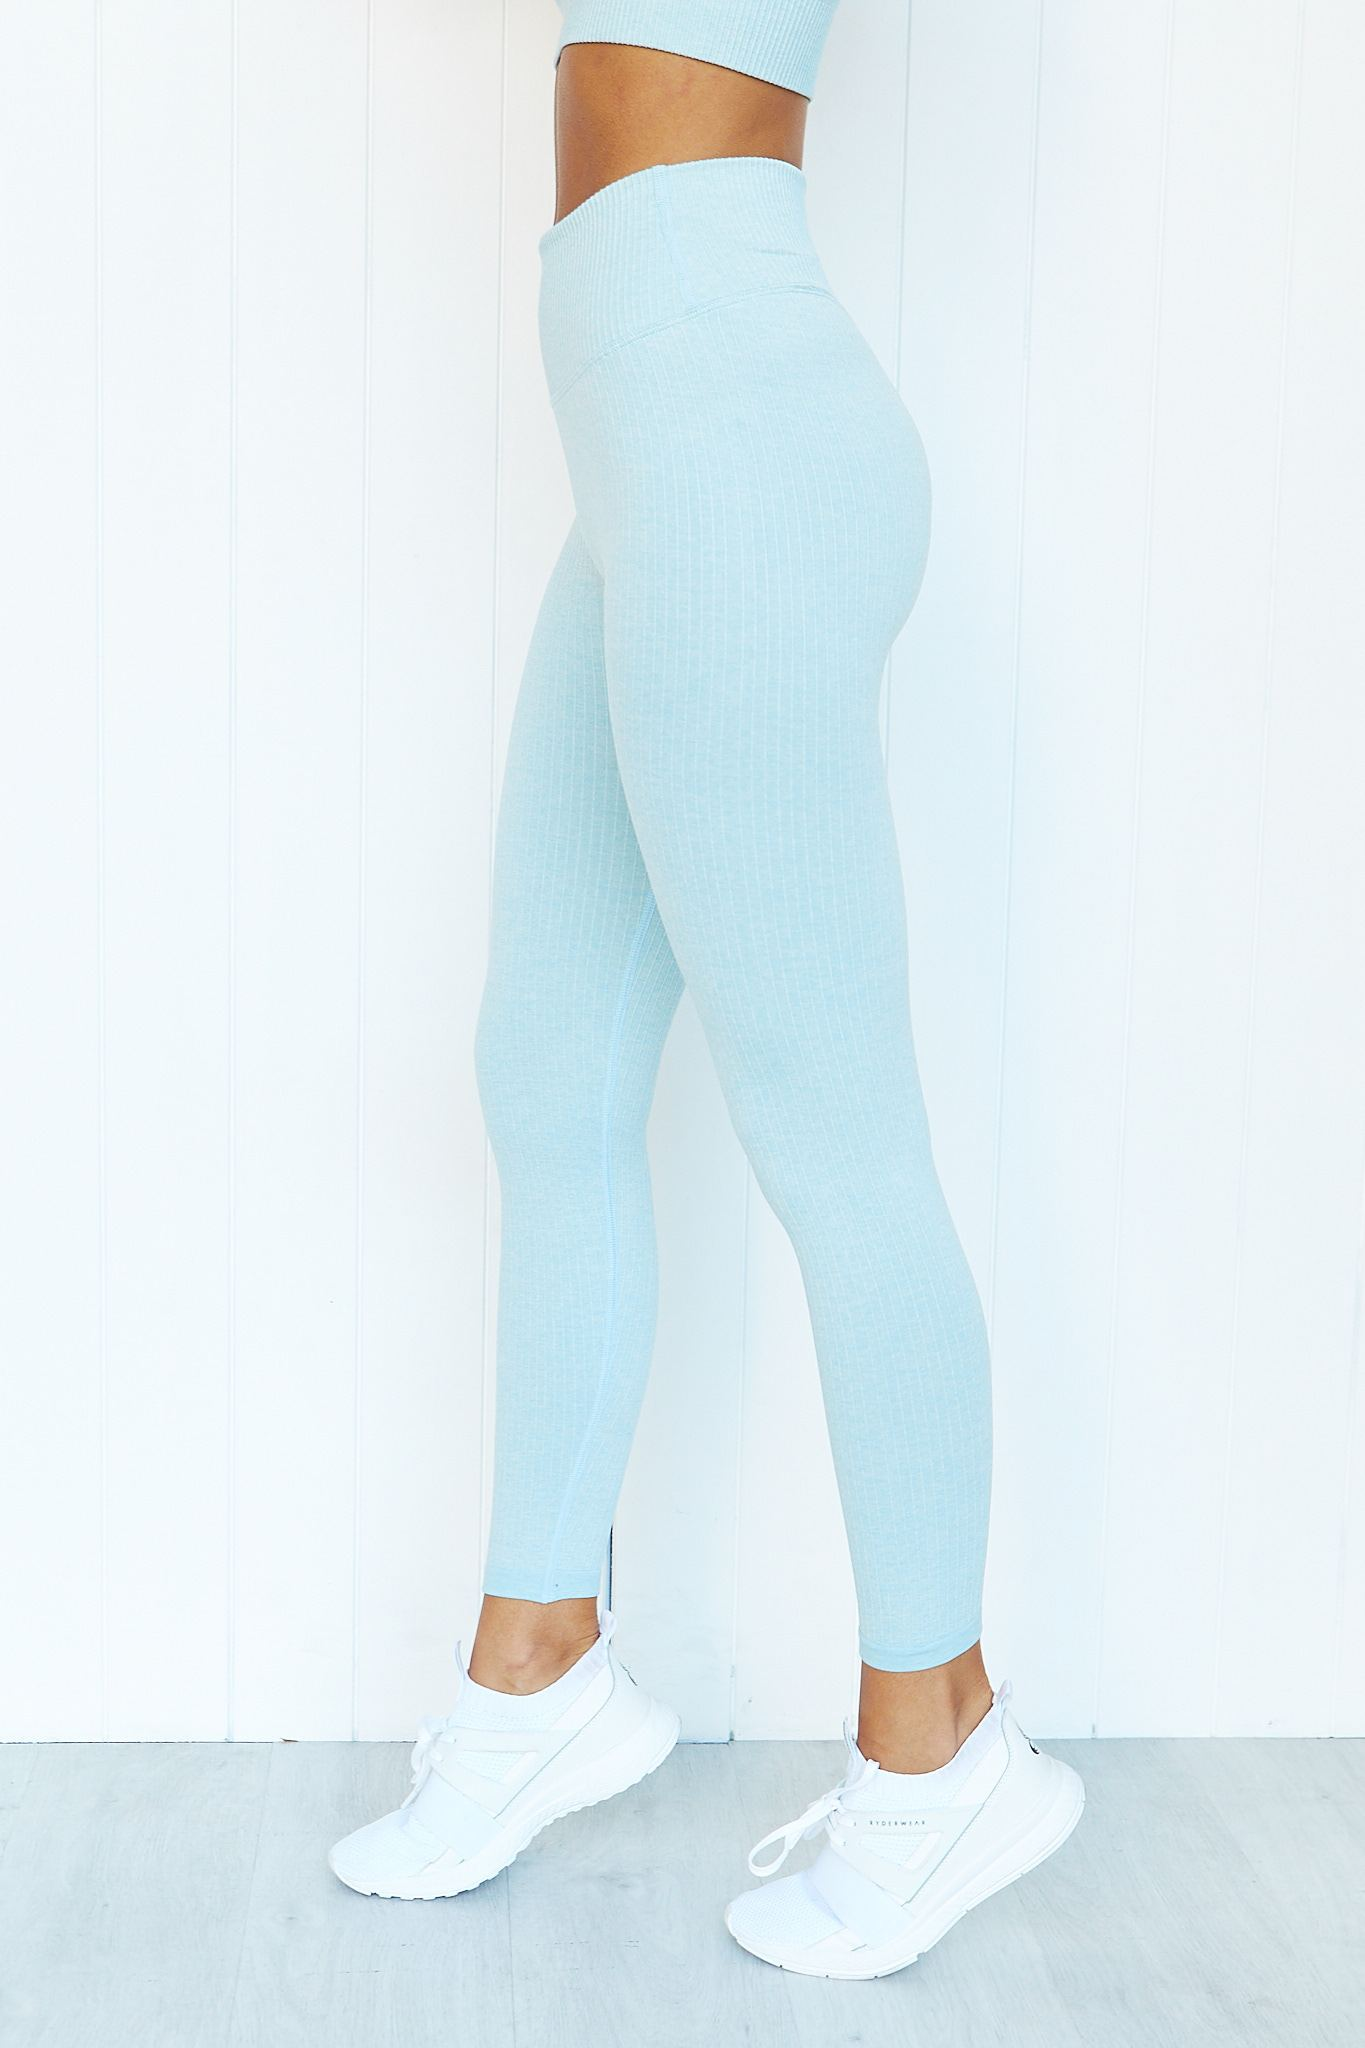 67fd72e954 Turquoise Ribbed Seamless Tights Turquoise Ribbed Seamless Tights Turquoise  Ribbed Seamless Tights ...